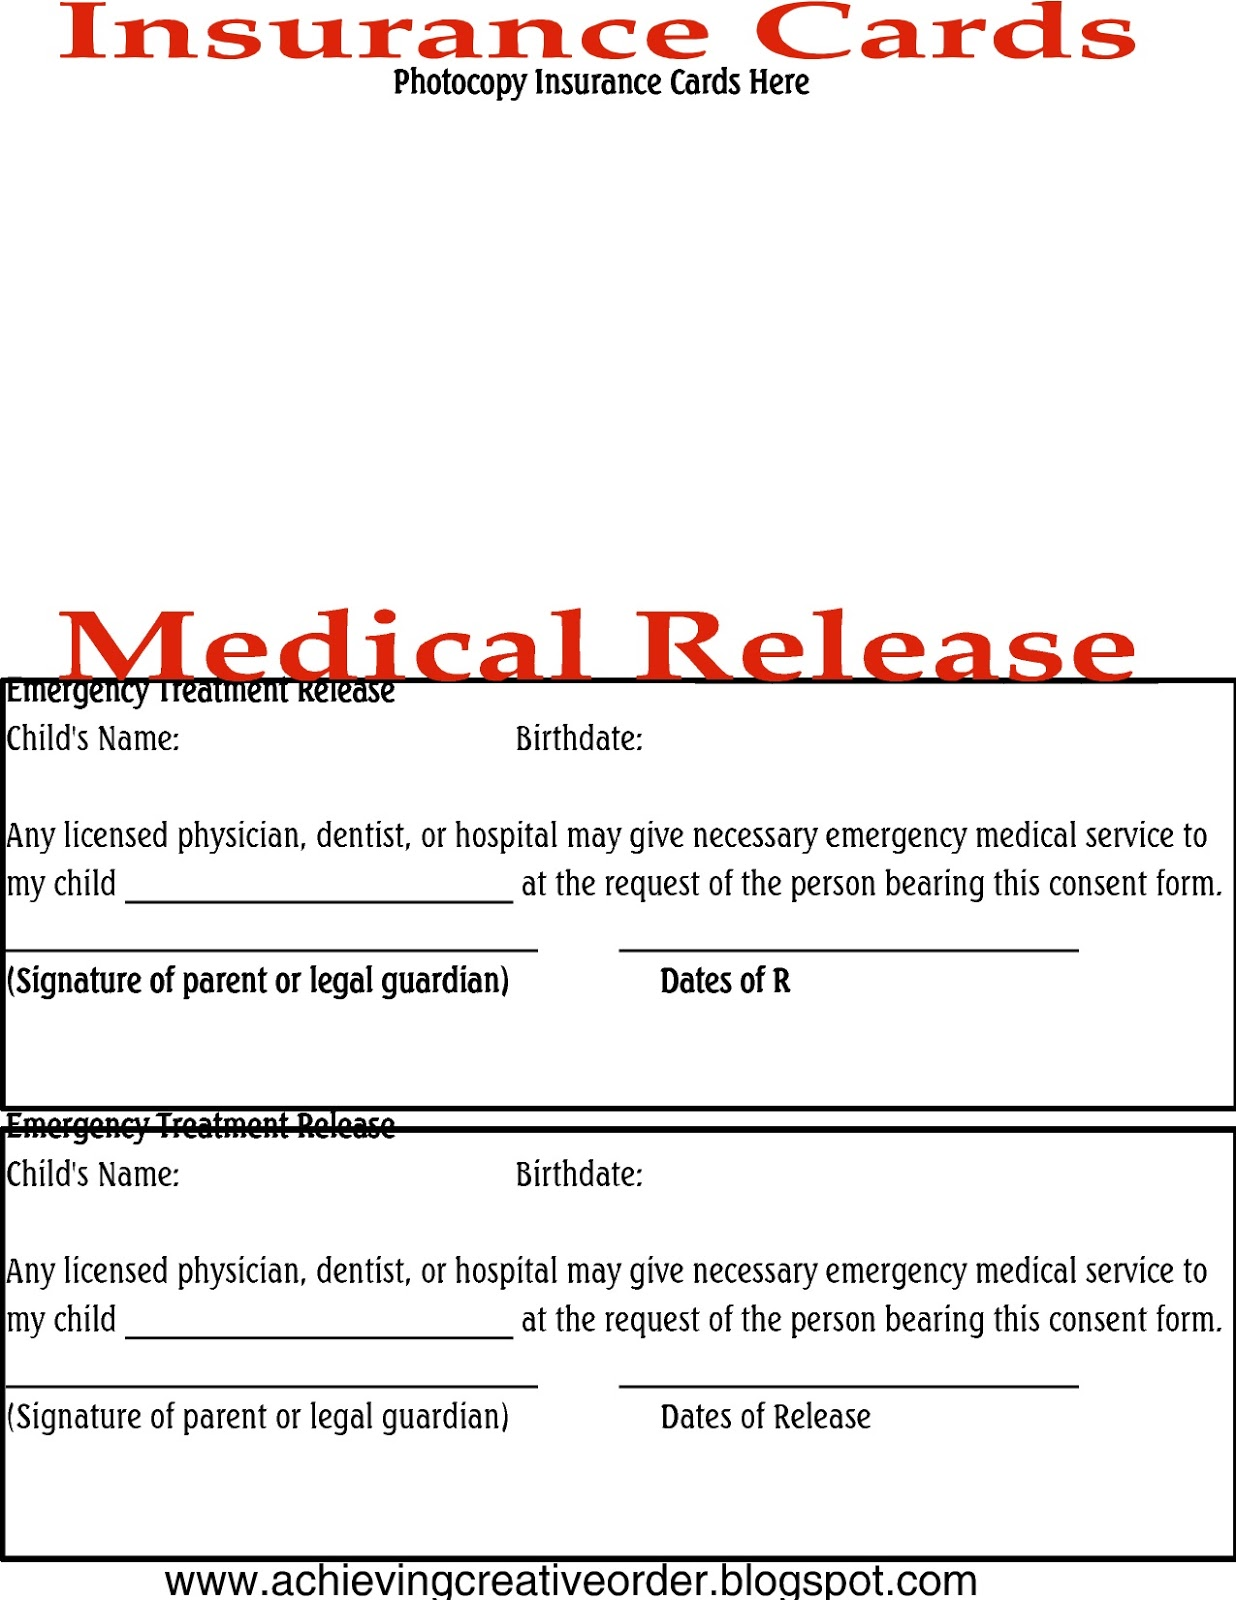 Stunning Medical Release Forms Contemporary - Office Resume Sample ...